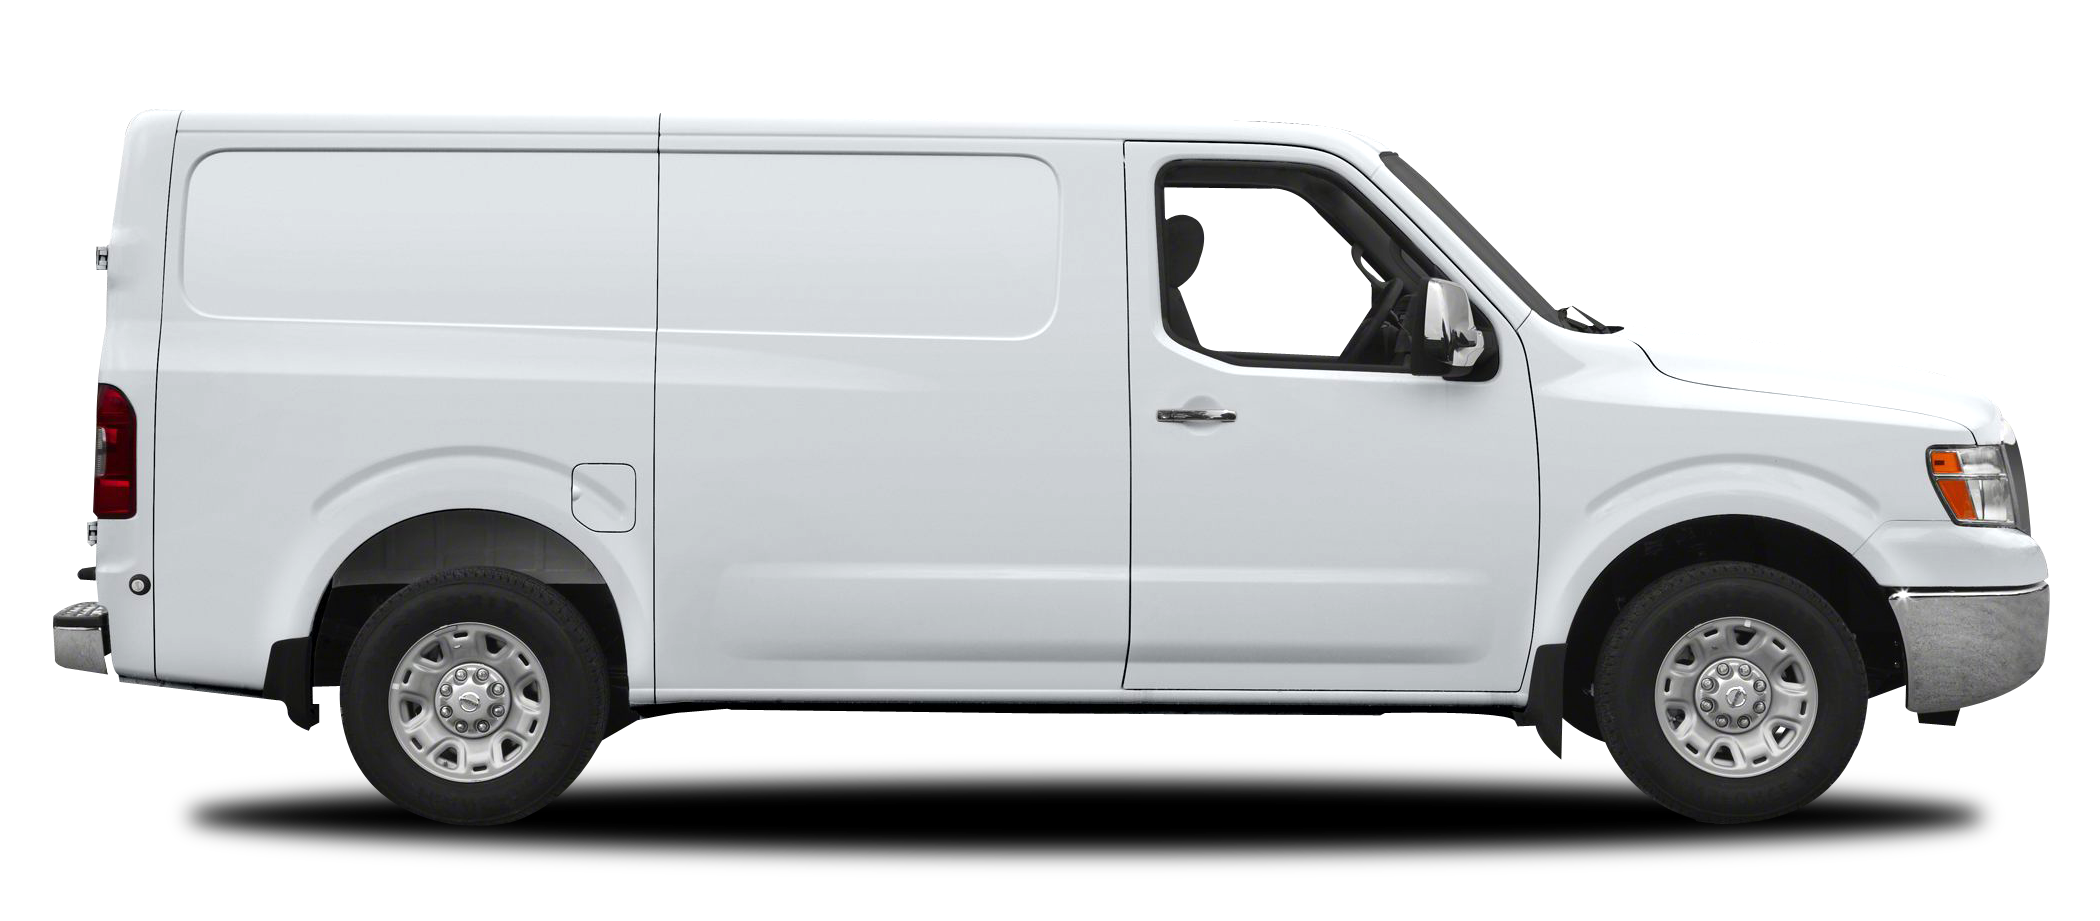 Clipart delivery car png freeuse library Delivery Van PNG Image - PurePNG | Free transparent CC0 PNG Image ... png freeuse library